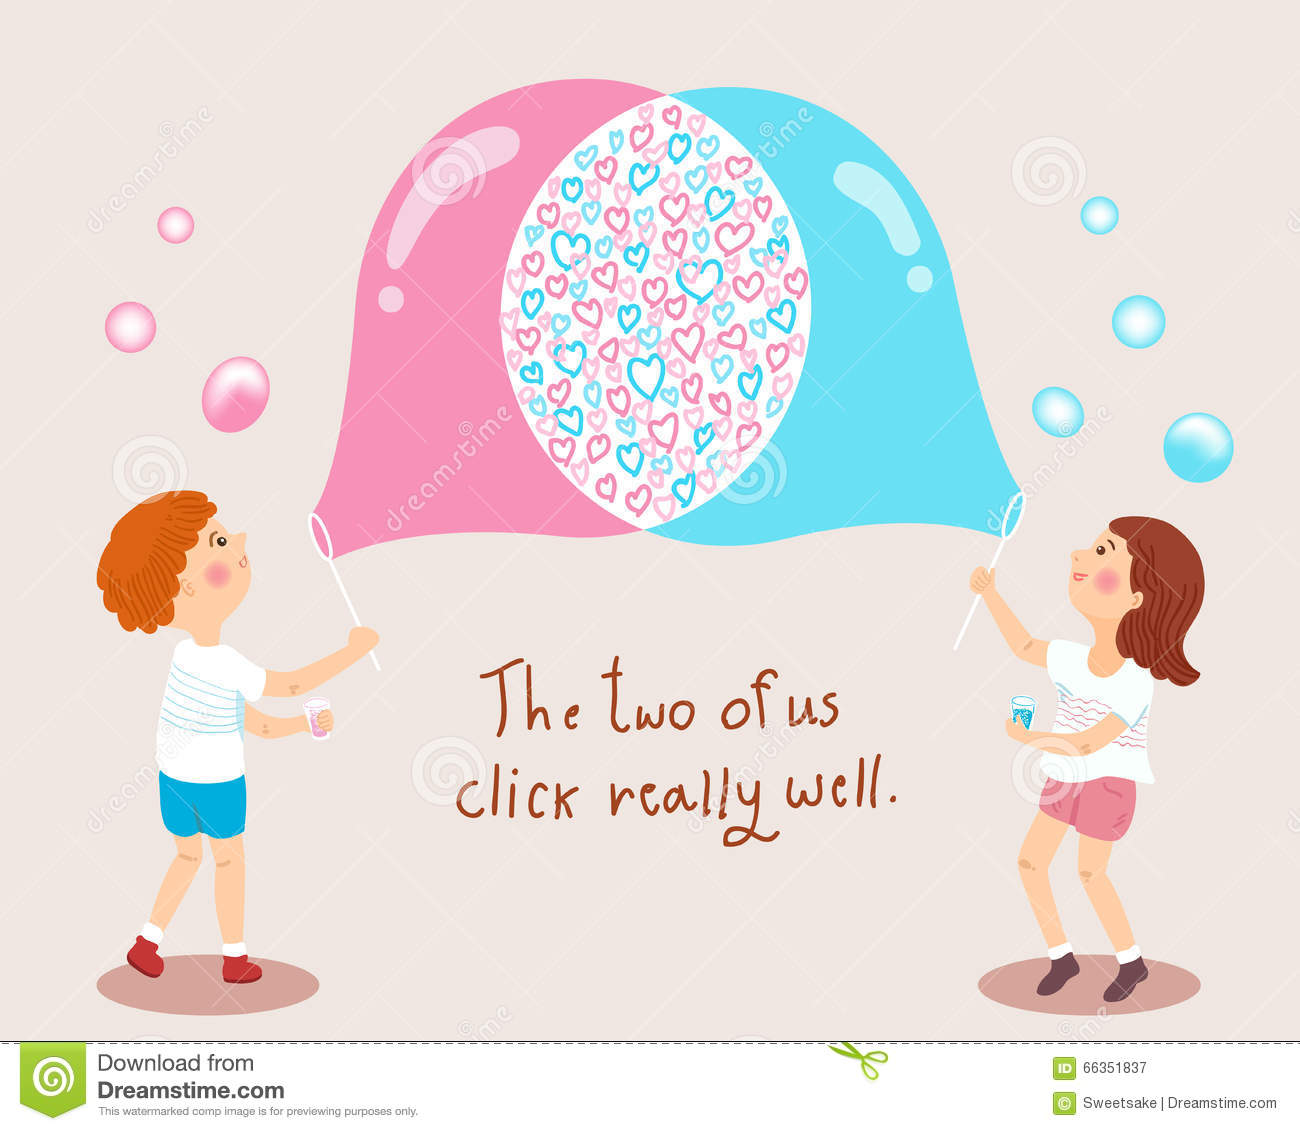 Boy and girl blowing soap bubbles love concept illustration